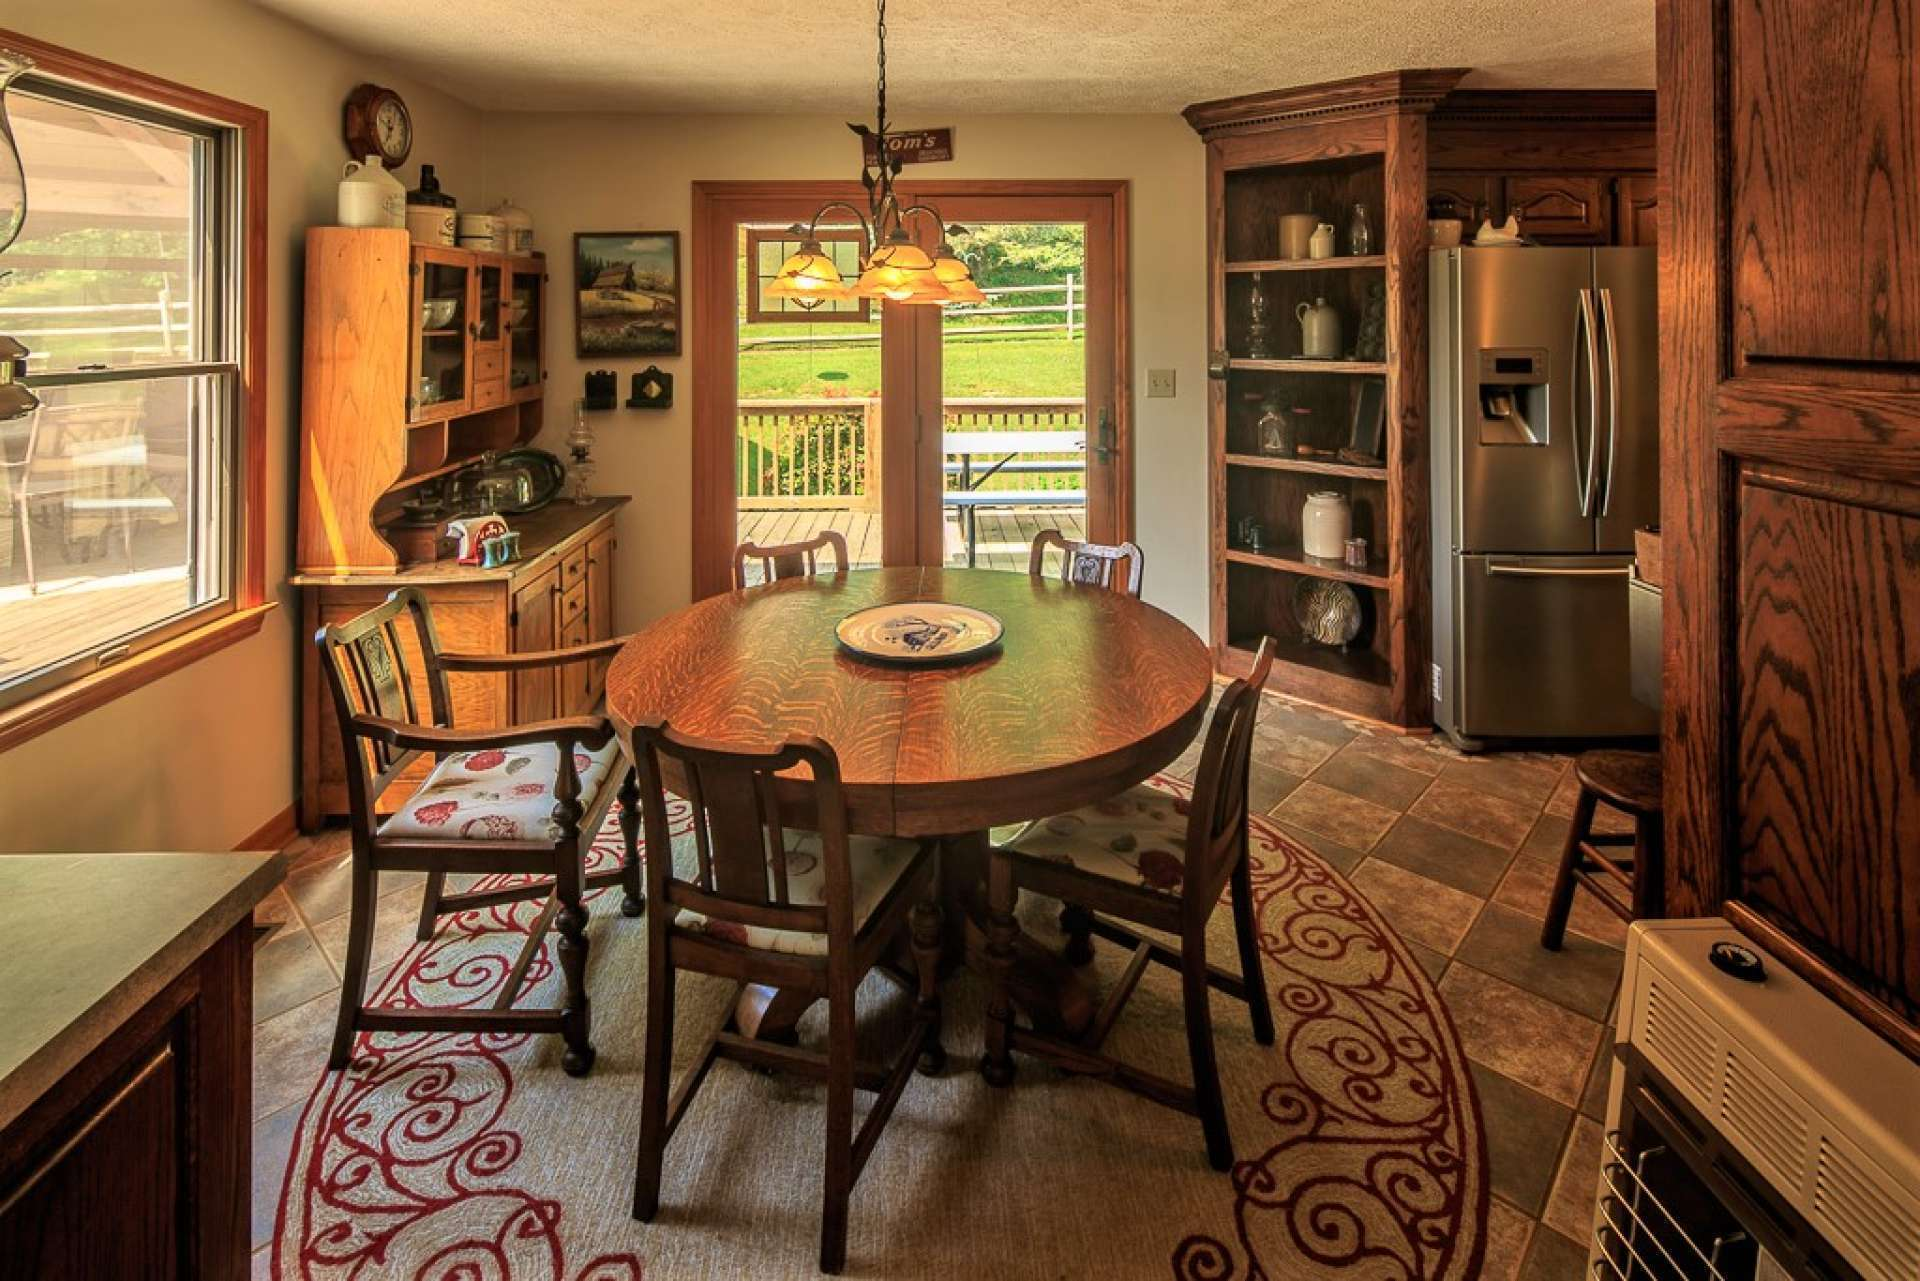 The kitchen also offers a breakfast nook or informal dining area featuring easy access to the outdoors.